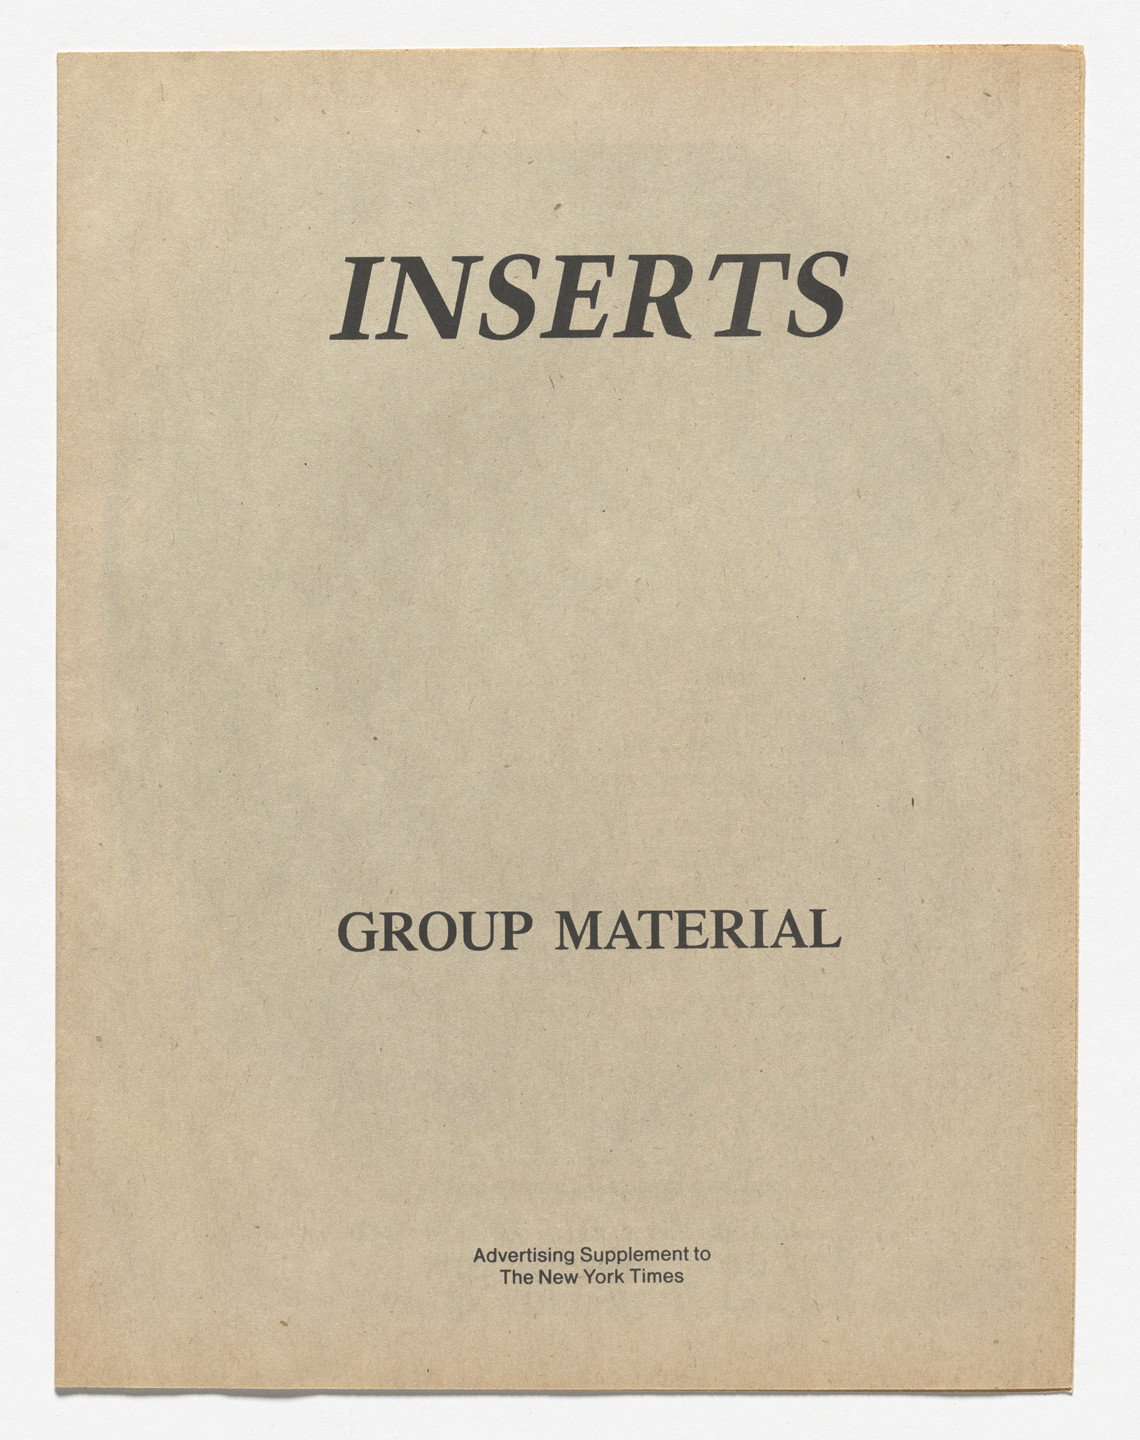 Group Material, Mike Glier, Jenny Holzer, Barbara Kruger, Carrie Mae Weems, Felix Gonzalez-Torres, Nancy Spero, Nancy Linn, Hans Haacke, Richard Prince, Louise Lawler. Inserts, an advertising supplement produced for New York Times. 1988